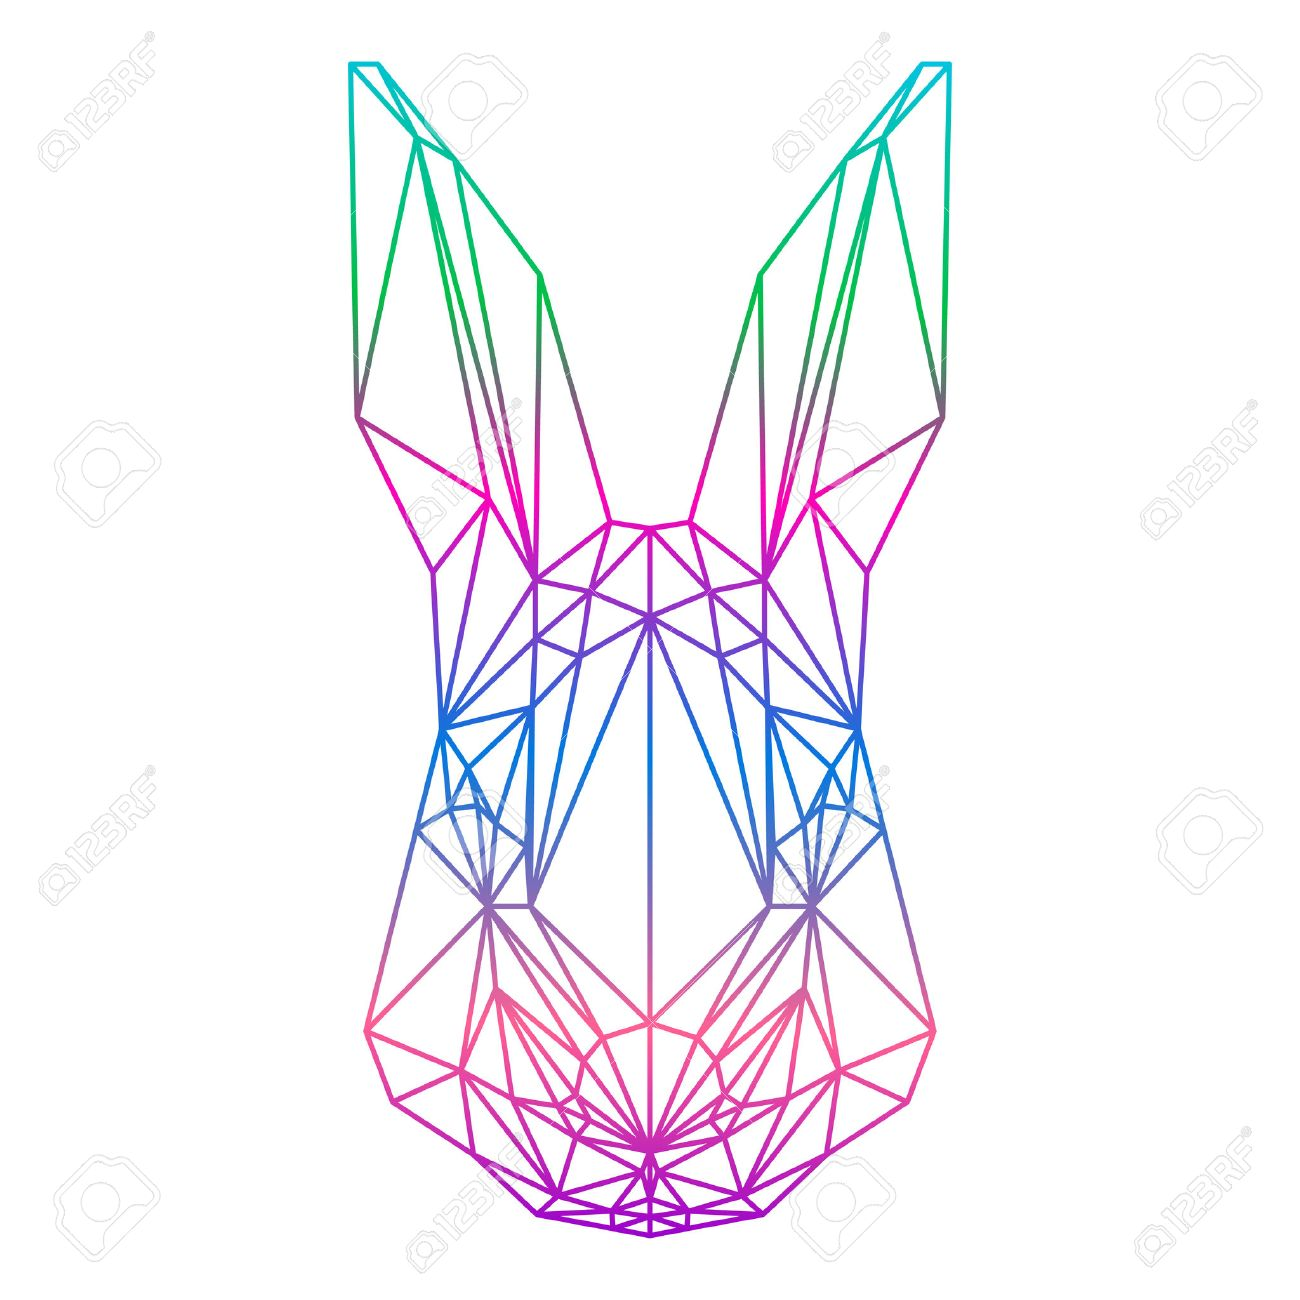 Polygonal Abstract Rabbit Silhouette Drawn In One Continuous Line Isolated On A White Backgrounds Stock Vector